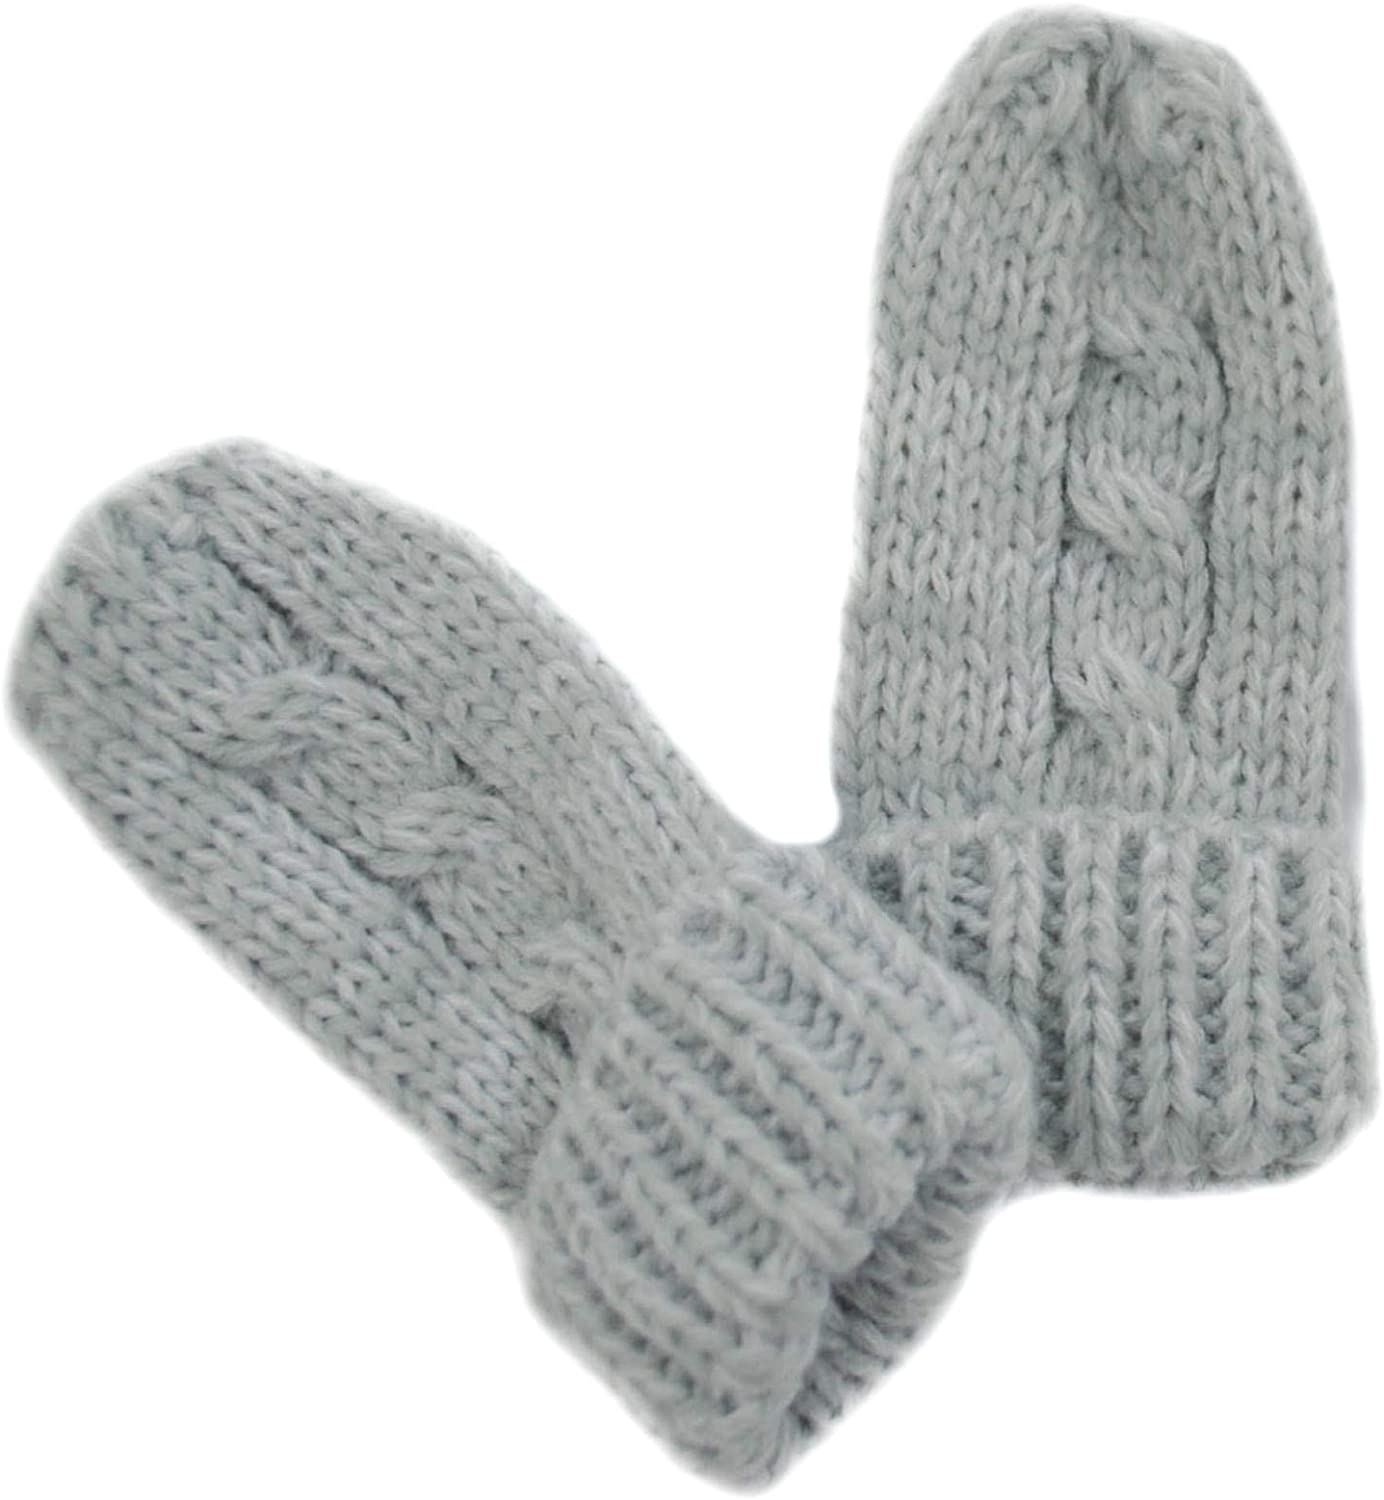 Newborn Grey Baby Mittens Winter Warm Knitted Mitts Boys Ribbed Gloves Girls Cable Knit Acrylic Mittens Colour Size 12 Months